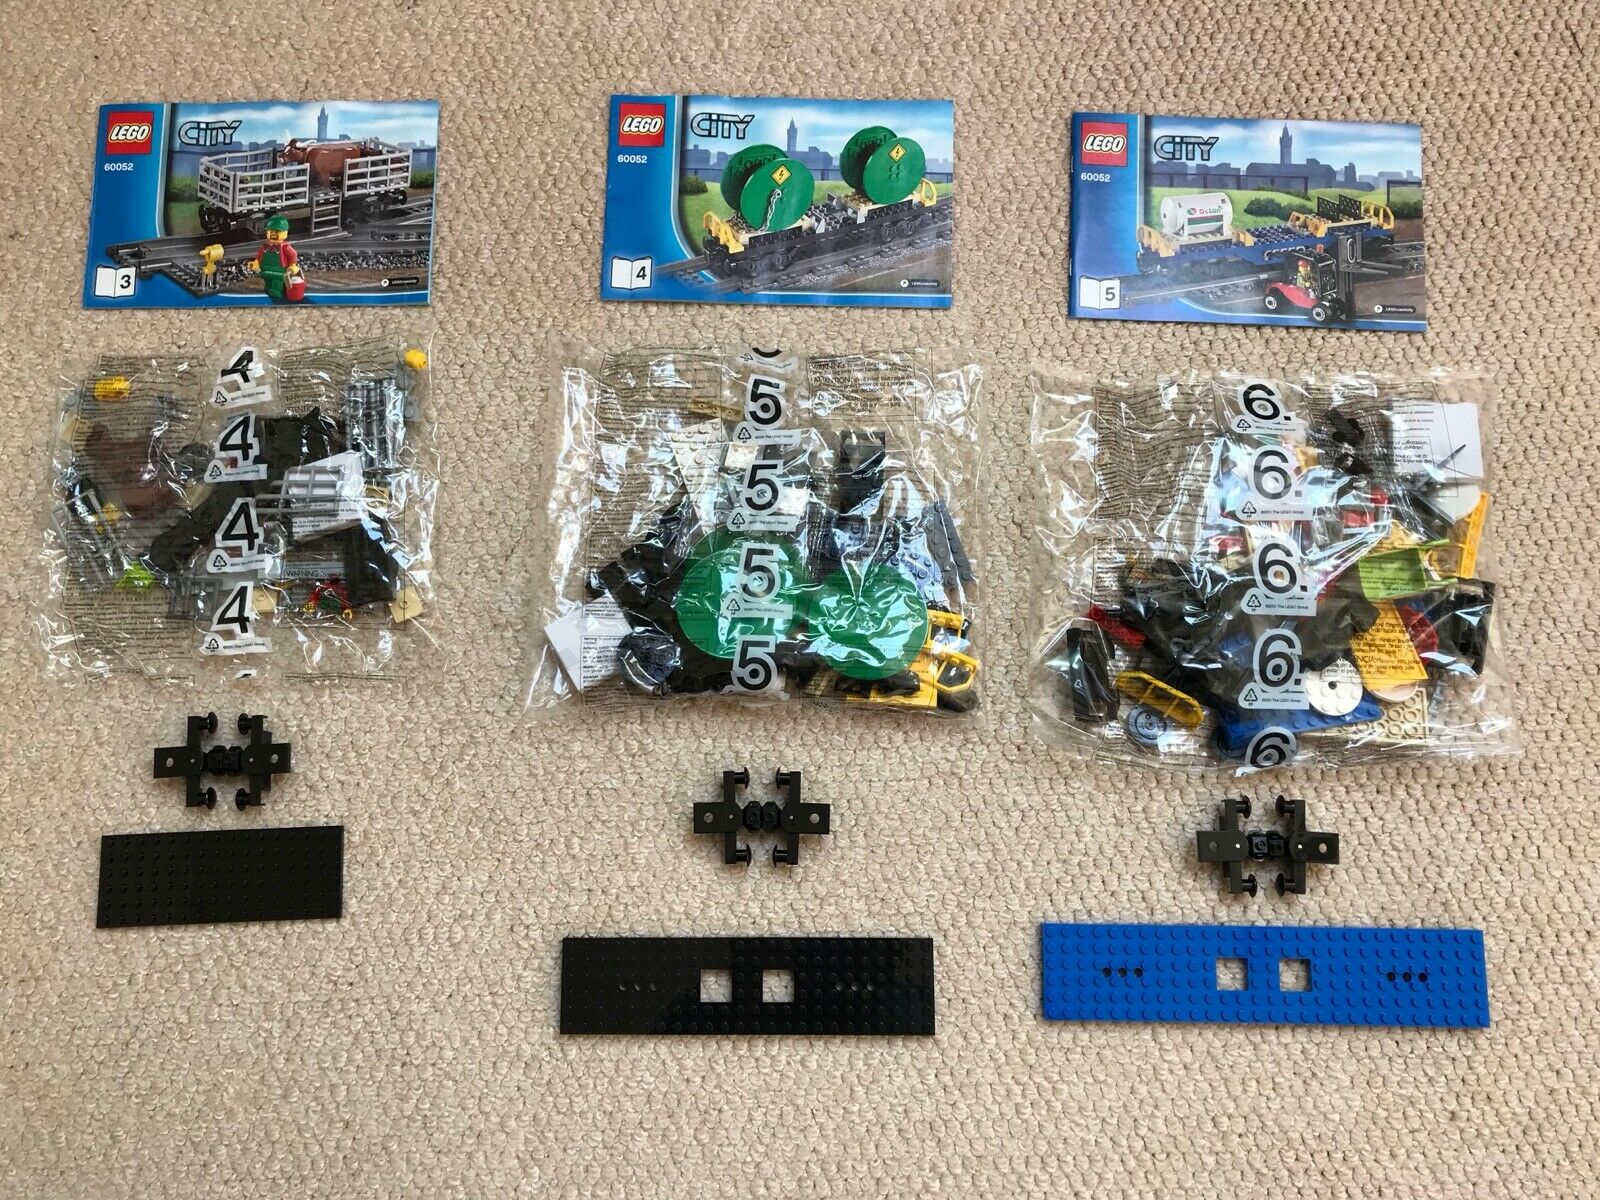 NEW - LEGO City 60052 Rolling Stock   Wagons - BNISB + FREE P&P